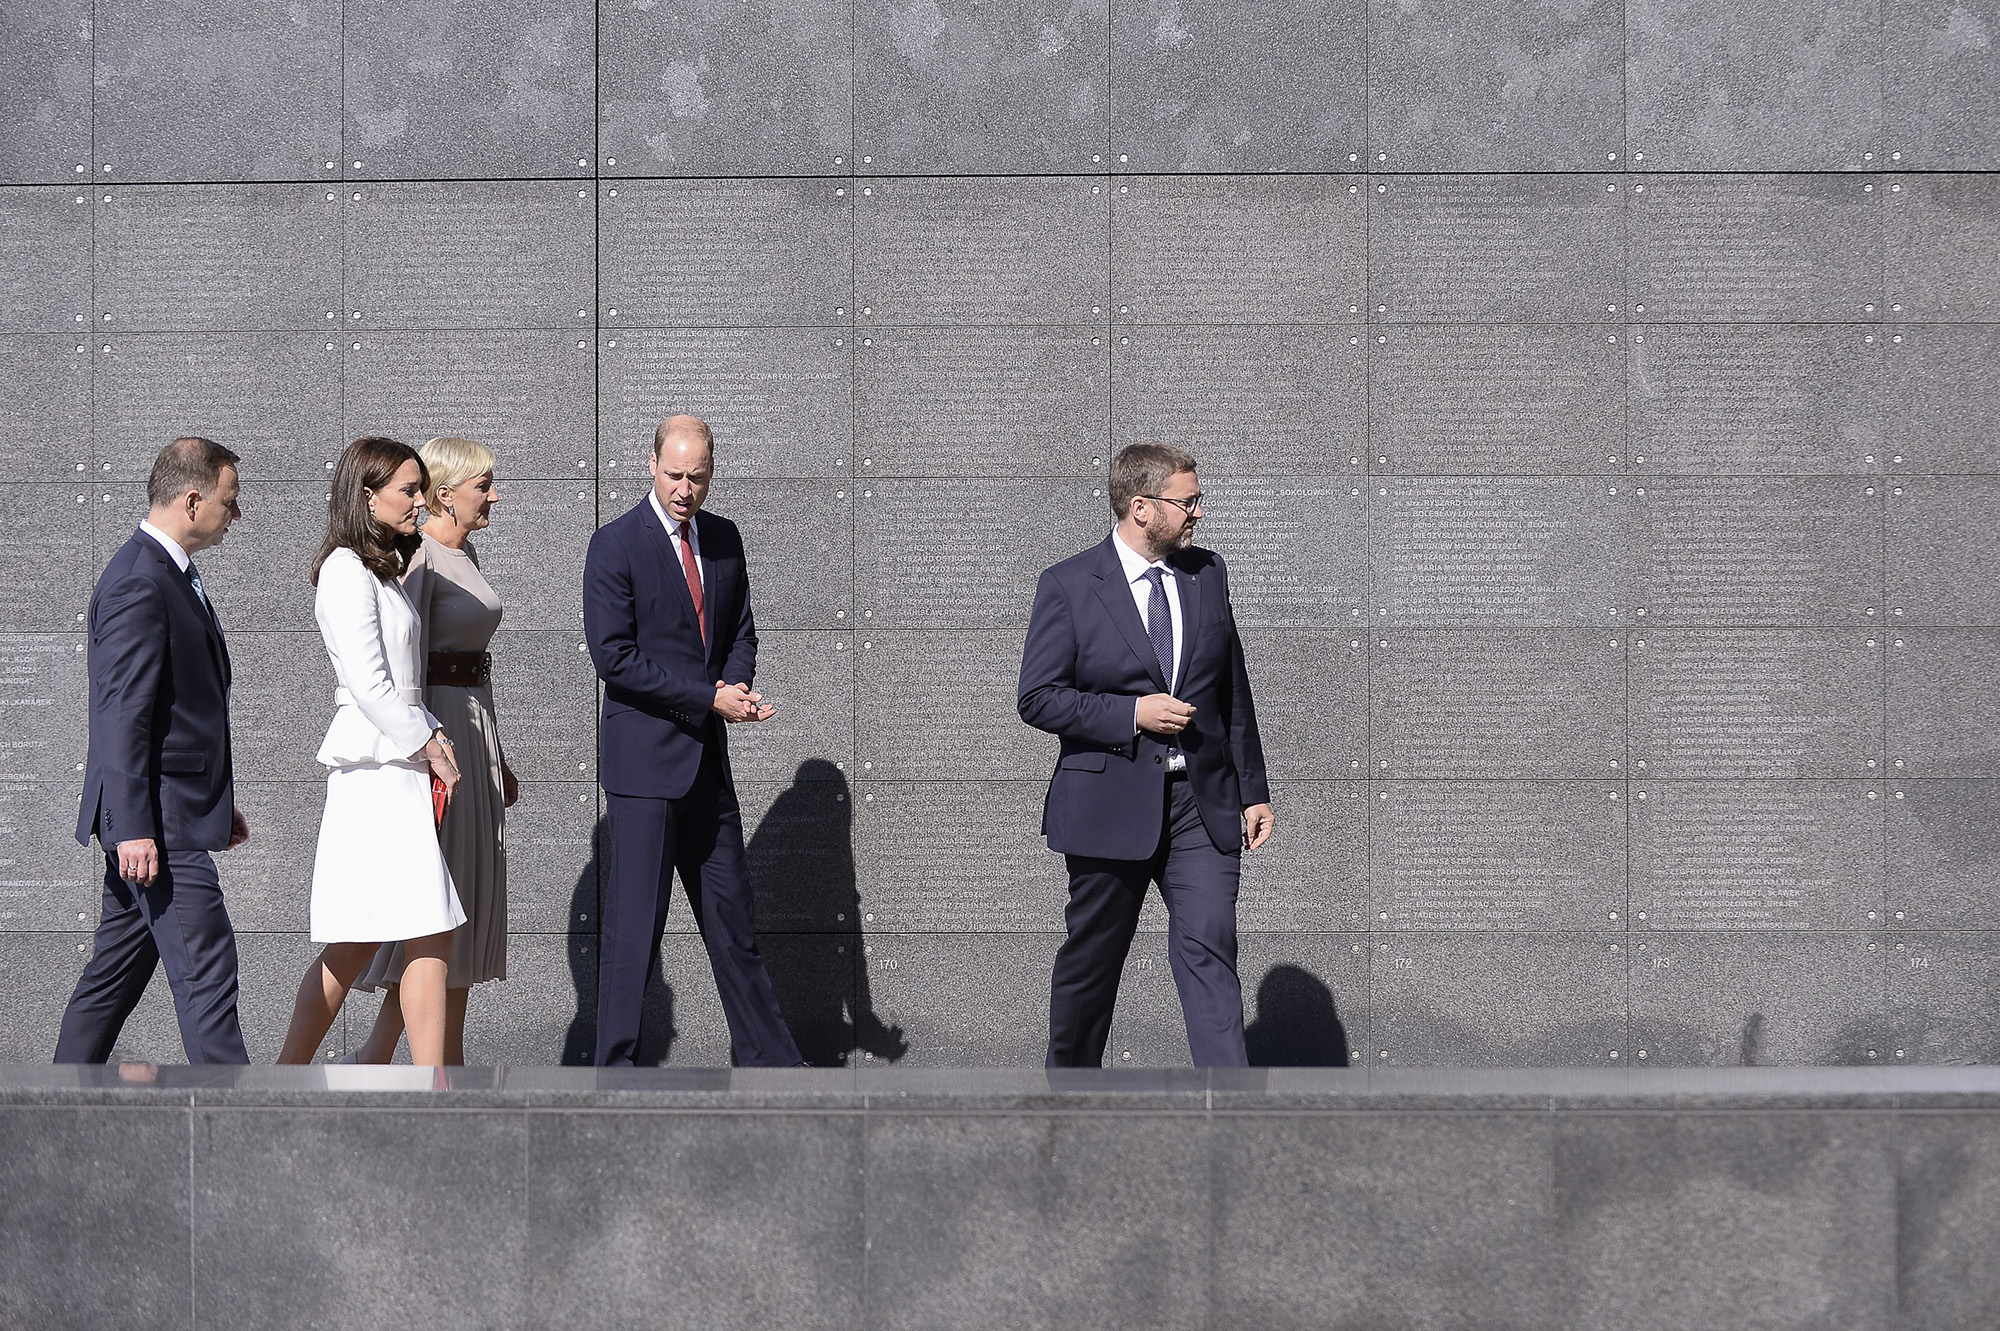 The Duke and Duchess of Cambridge's visit Warsaw Uprising Museum